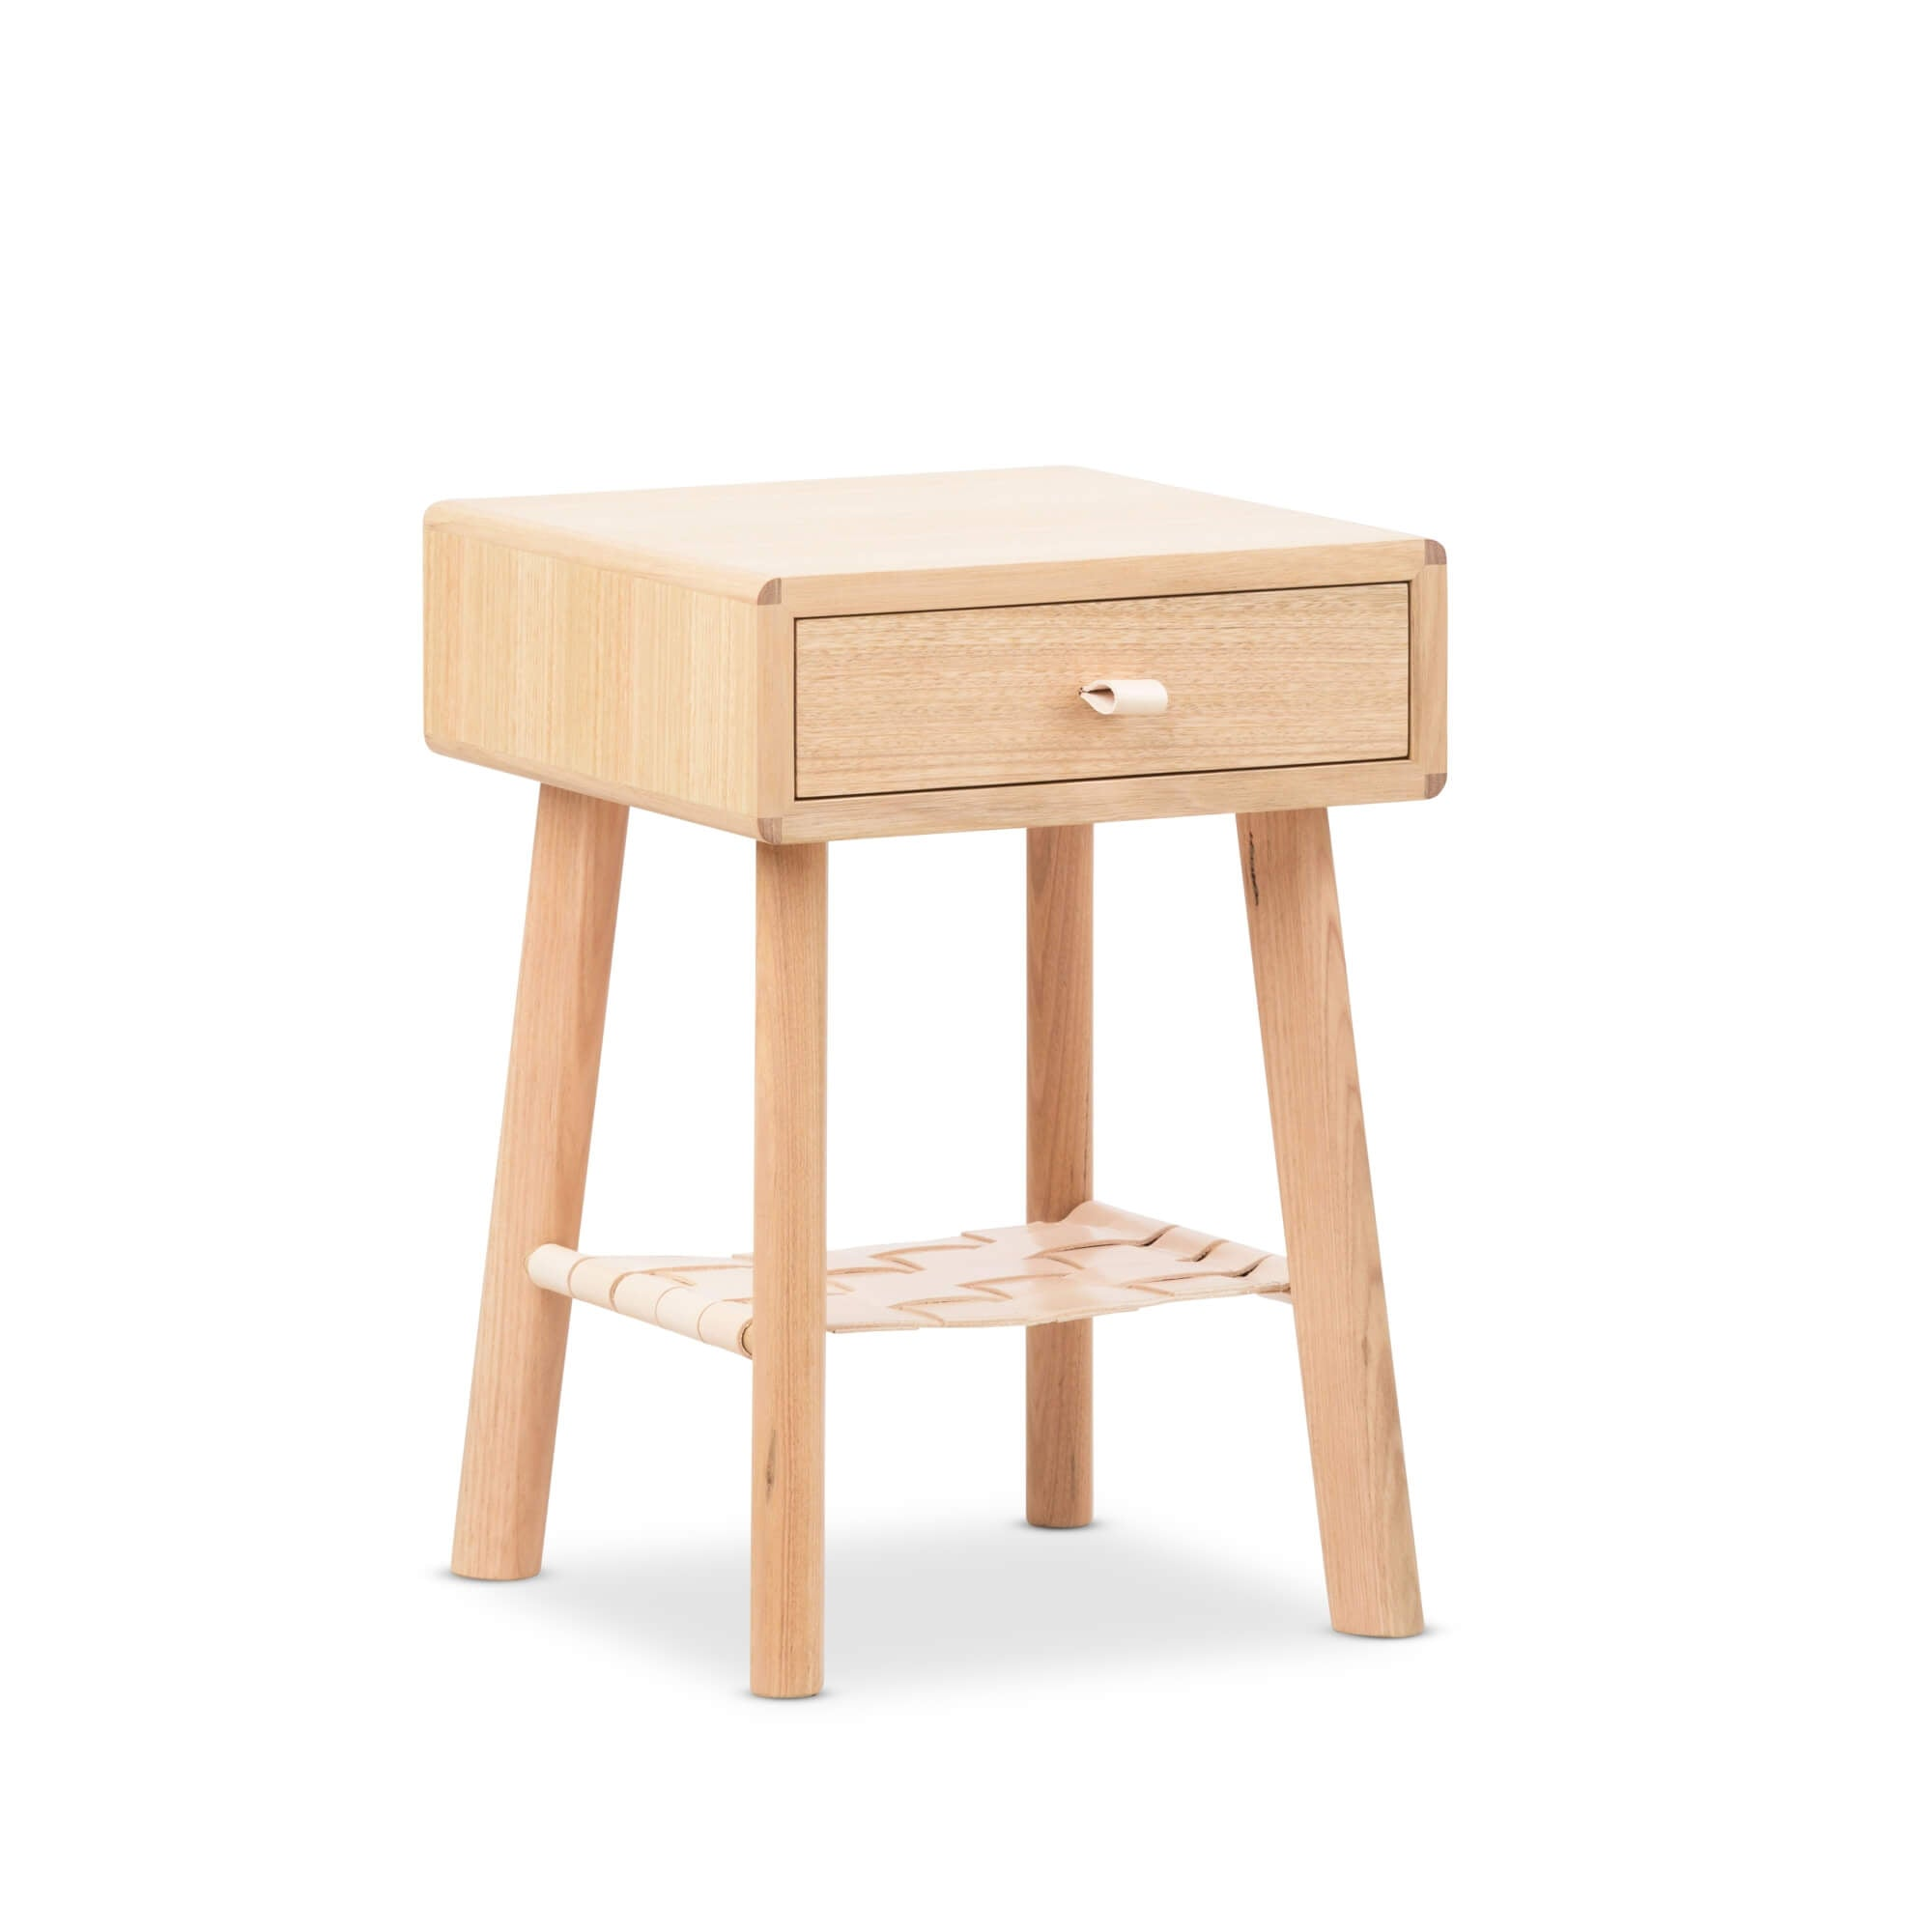 Nightstand made from natural non-yellow oak wood.